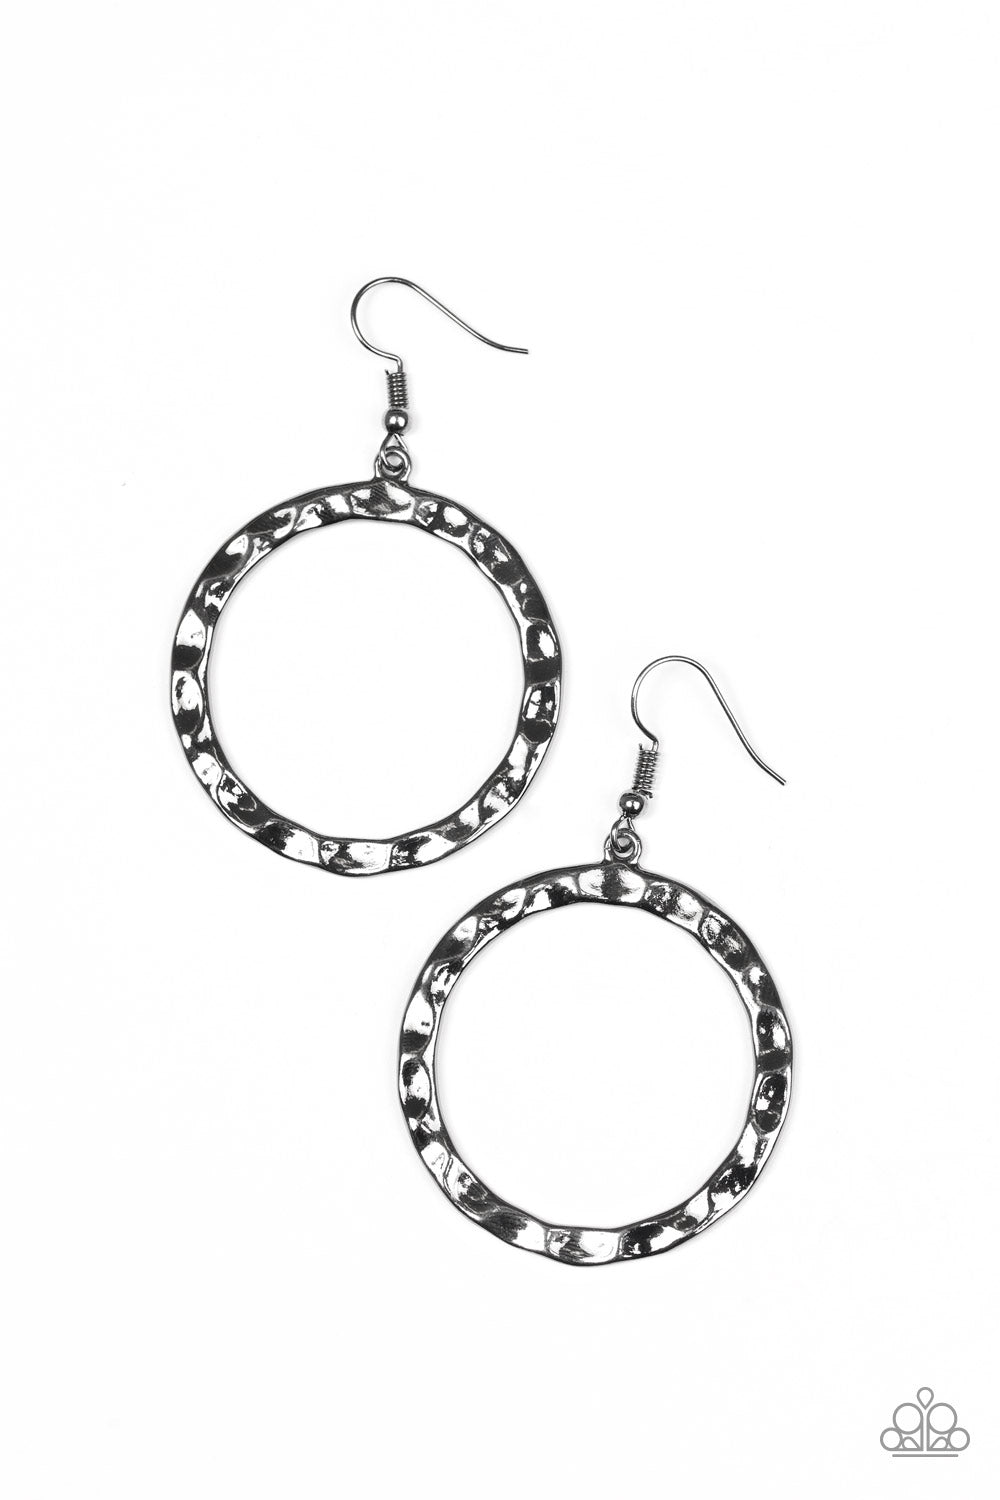 five-dollar-jewelry-hammer-time-black-earrings-paparazzi-accessories